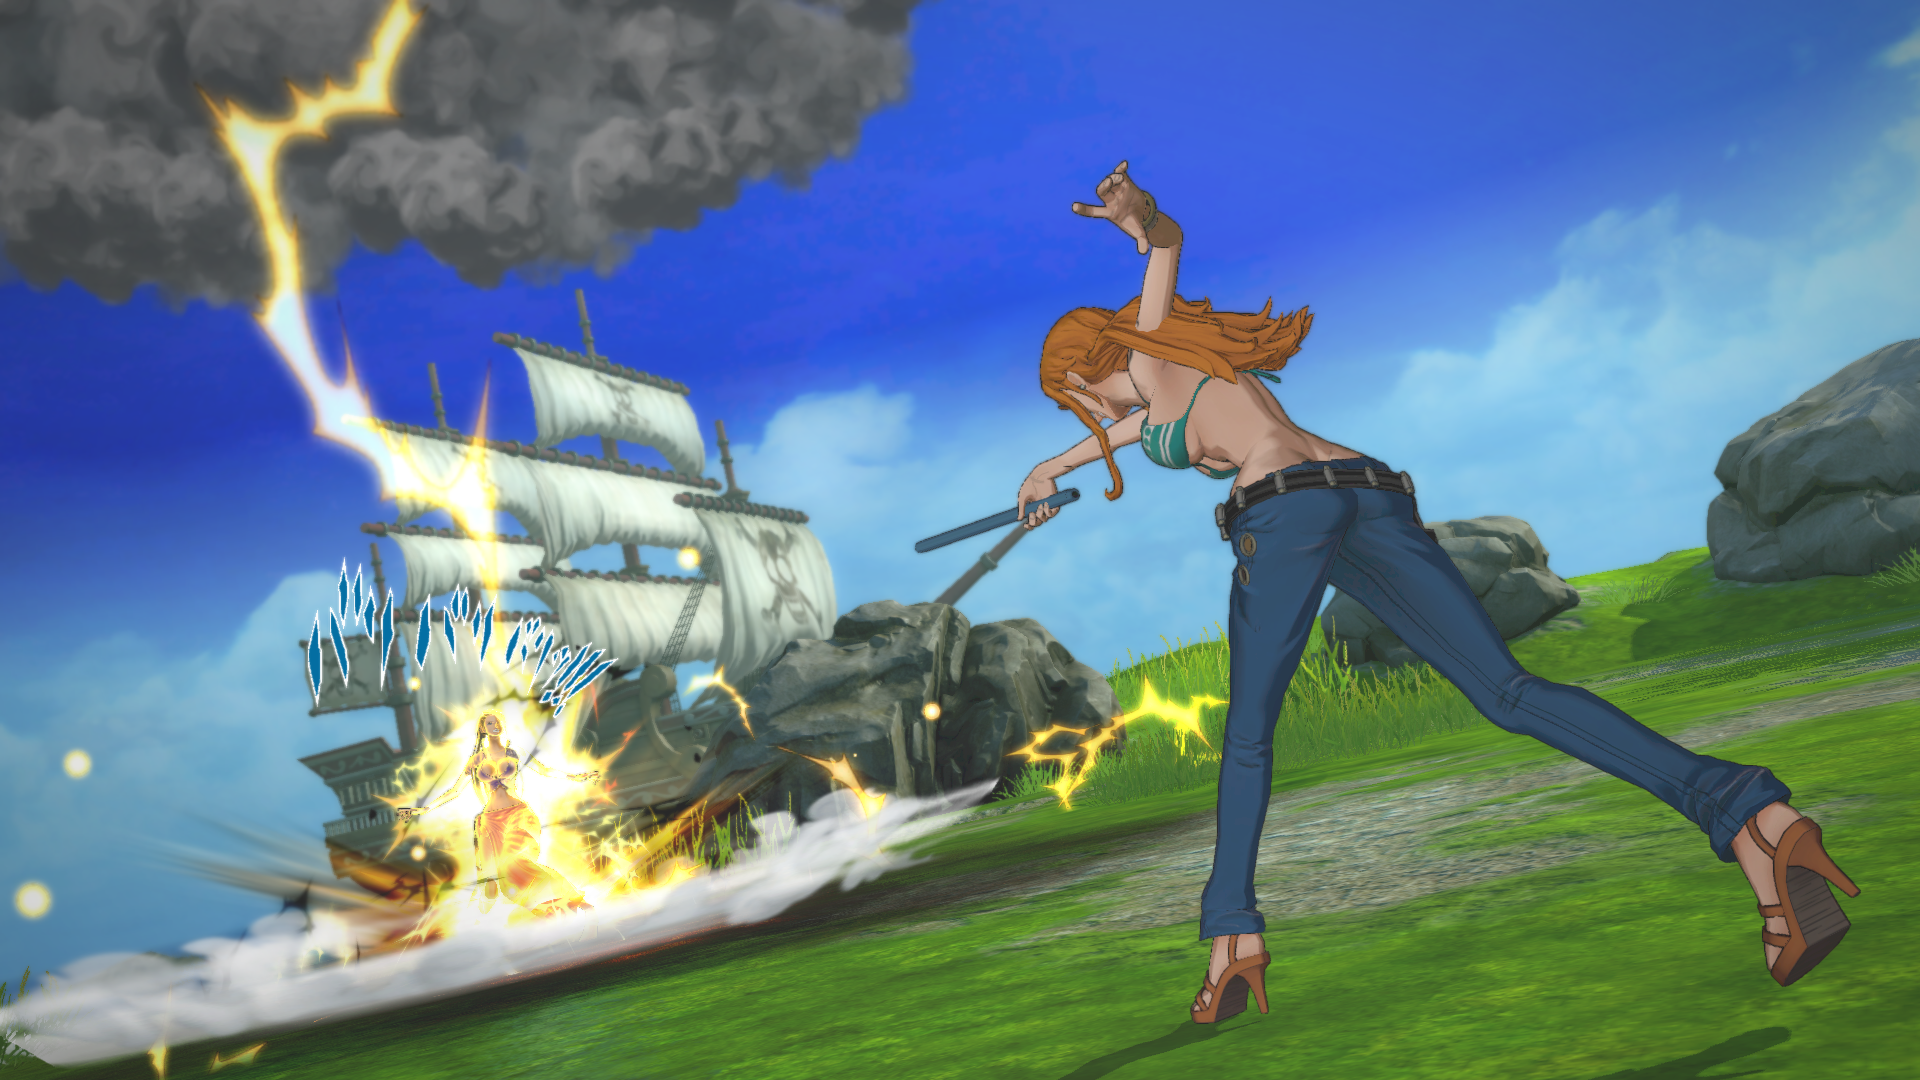 Bandai Namco Announces The Release Date For One Piece: Burning Blood